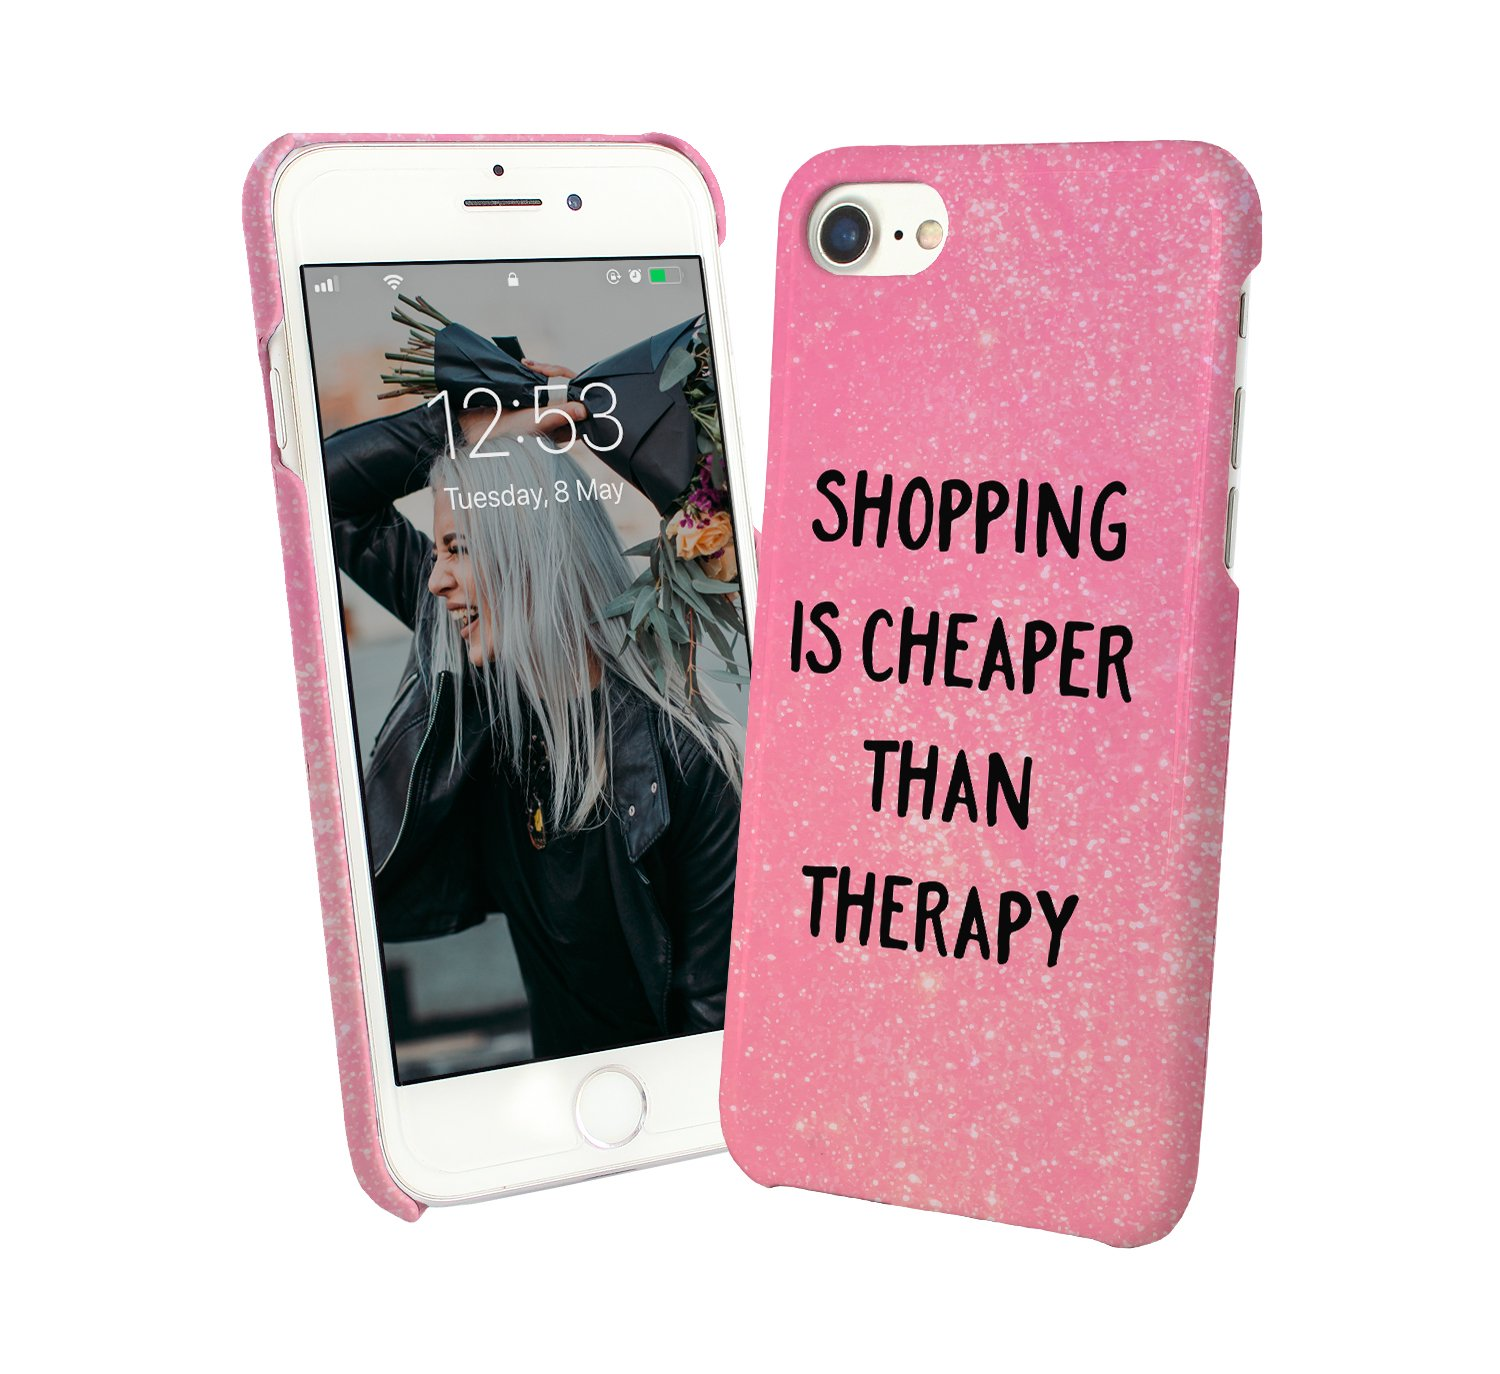 Shopping Is Cheaper Than Therapy Addict Fashion.PNG iPhone 6 7 8 X Galaxy S8 Note 8 Huawei P10 Carcasa De Telefono Estuche Protector Phone Case Cover Hard Plastic: Amazon.es: Electrónica